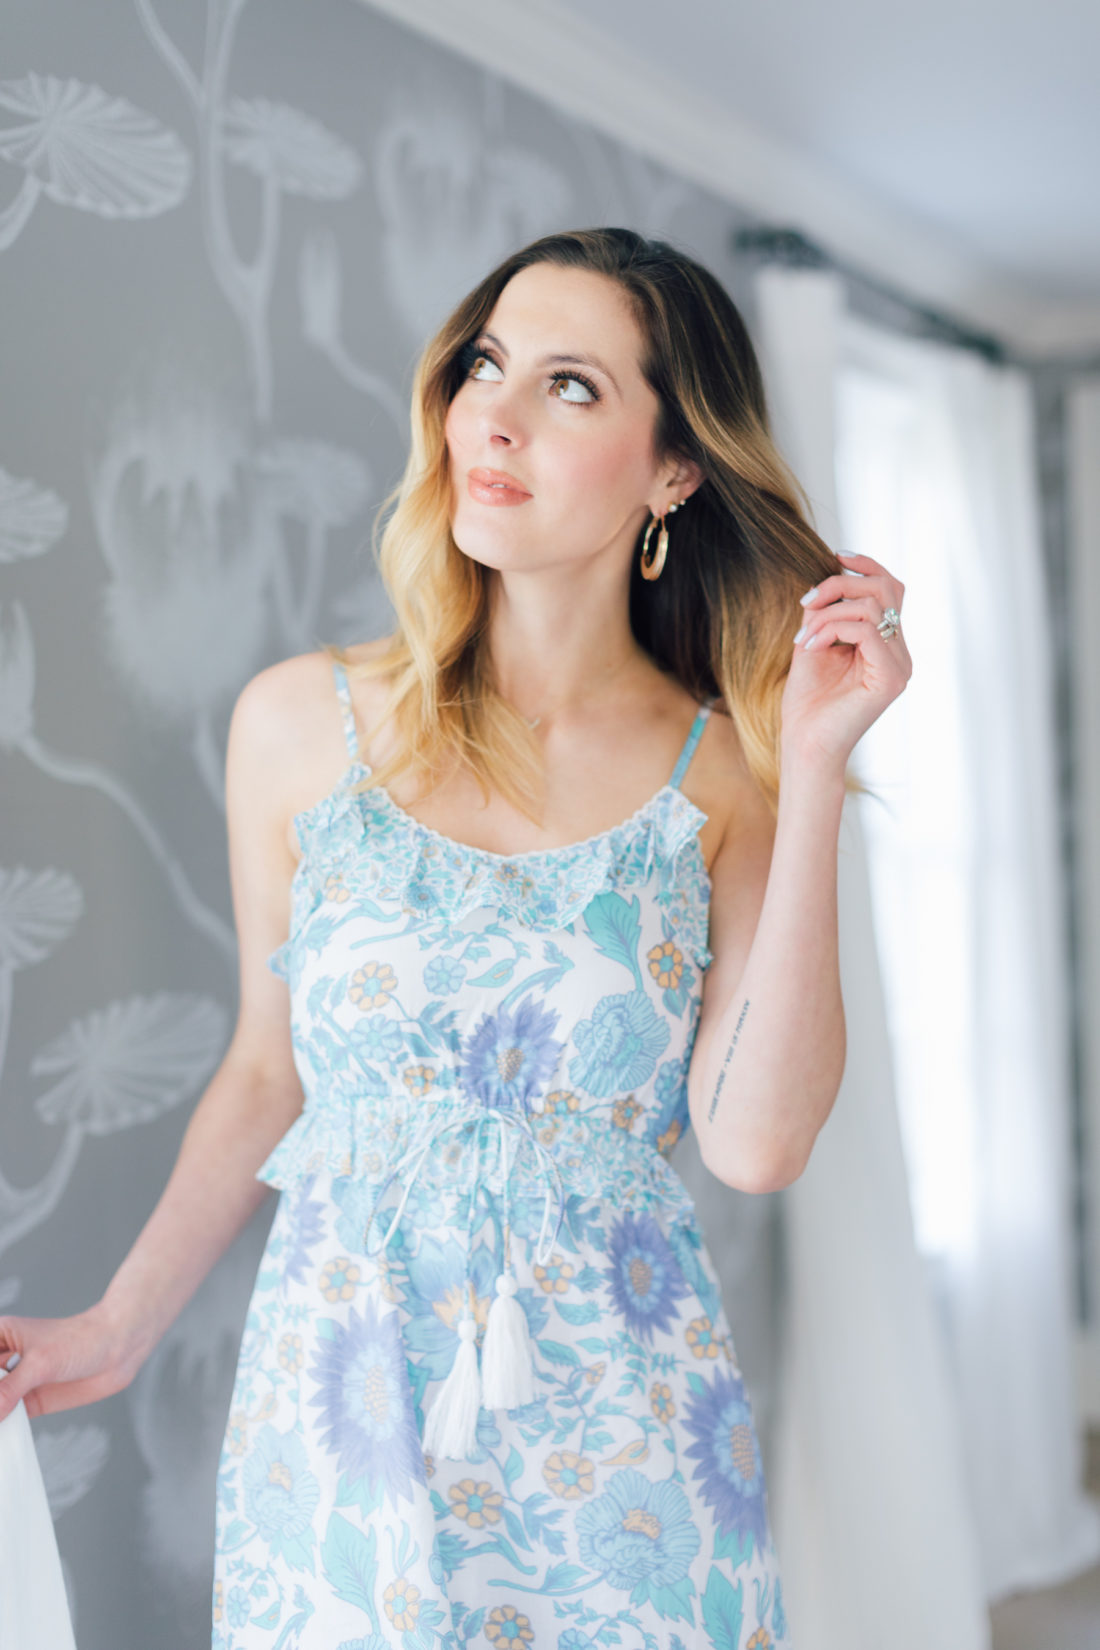 Eva Amurri Martino wears a floral dress from her Happily Eva After x Masala Baby Capsule collection in the dining room of her connecticut home